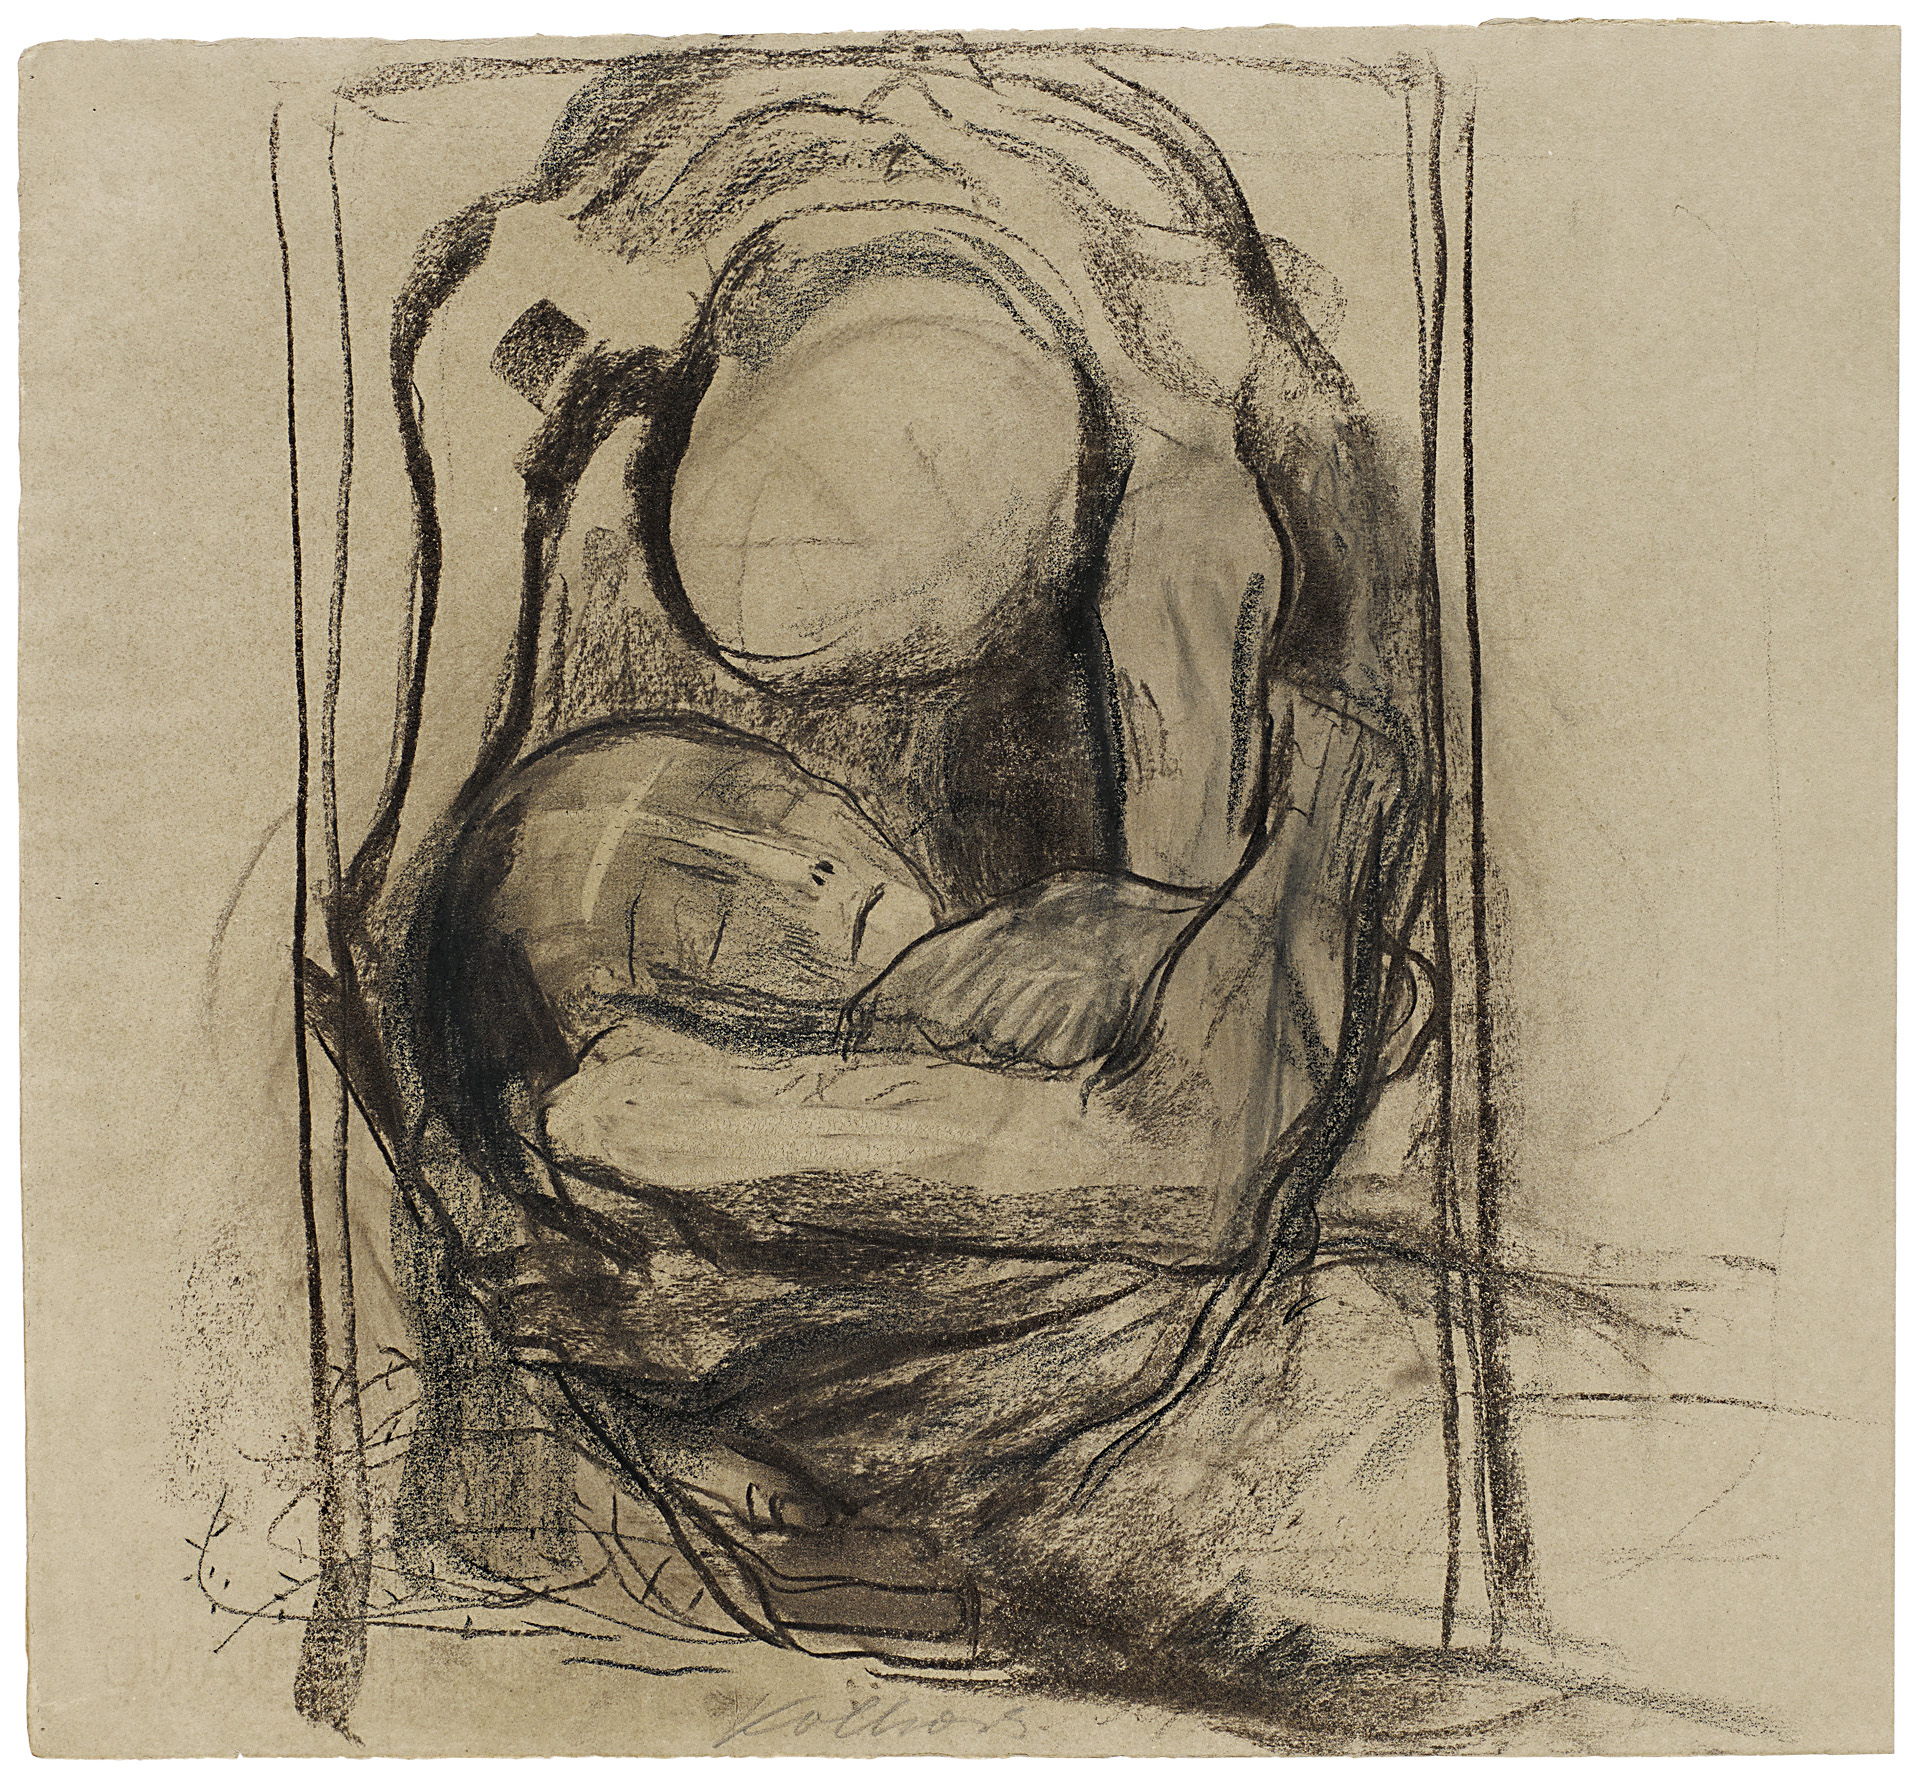 Käthe Kollwitz, Death takes a Woman, 1921/1922, charcoal, black and brown crayon, blotted, on olive-brown laid paper, NT 885, Cologne Kollwitz Collection © Käthe Kollwitz Museum Köln